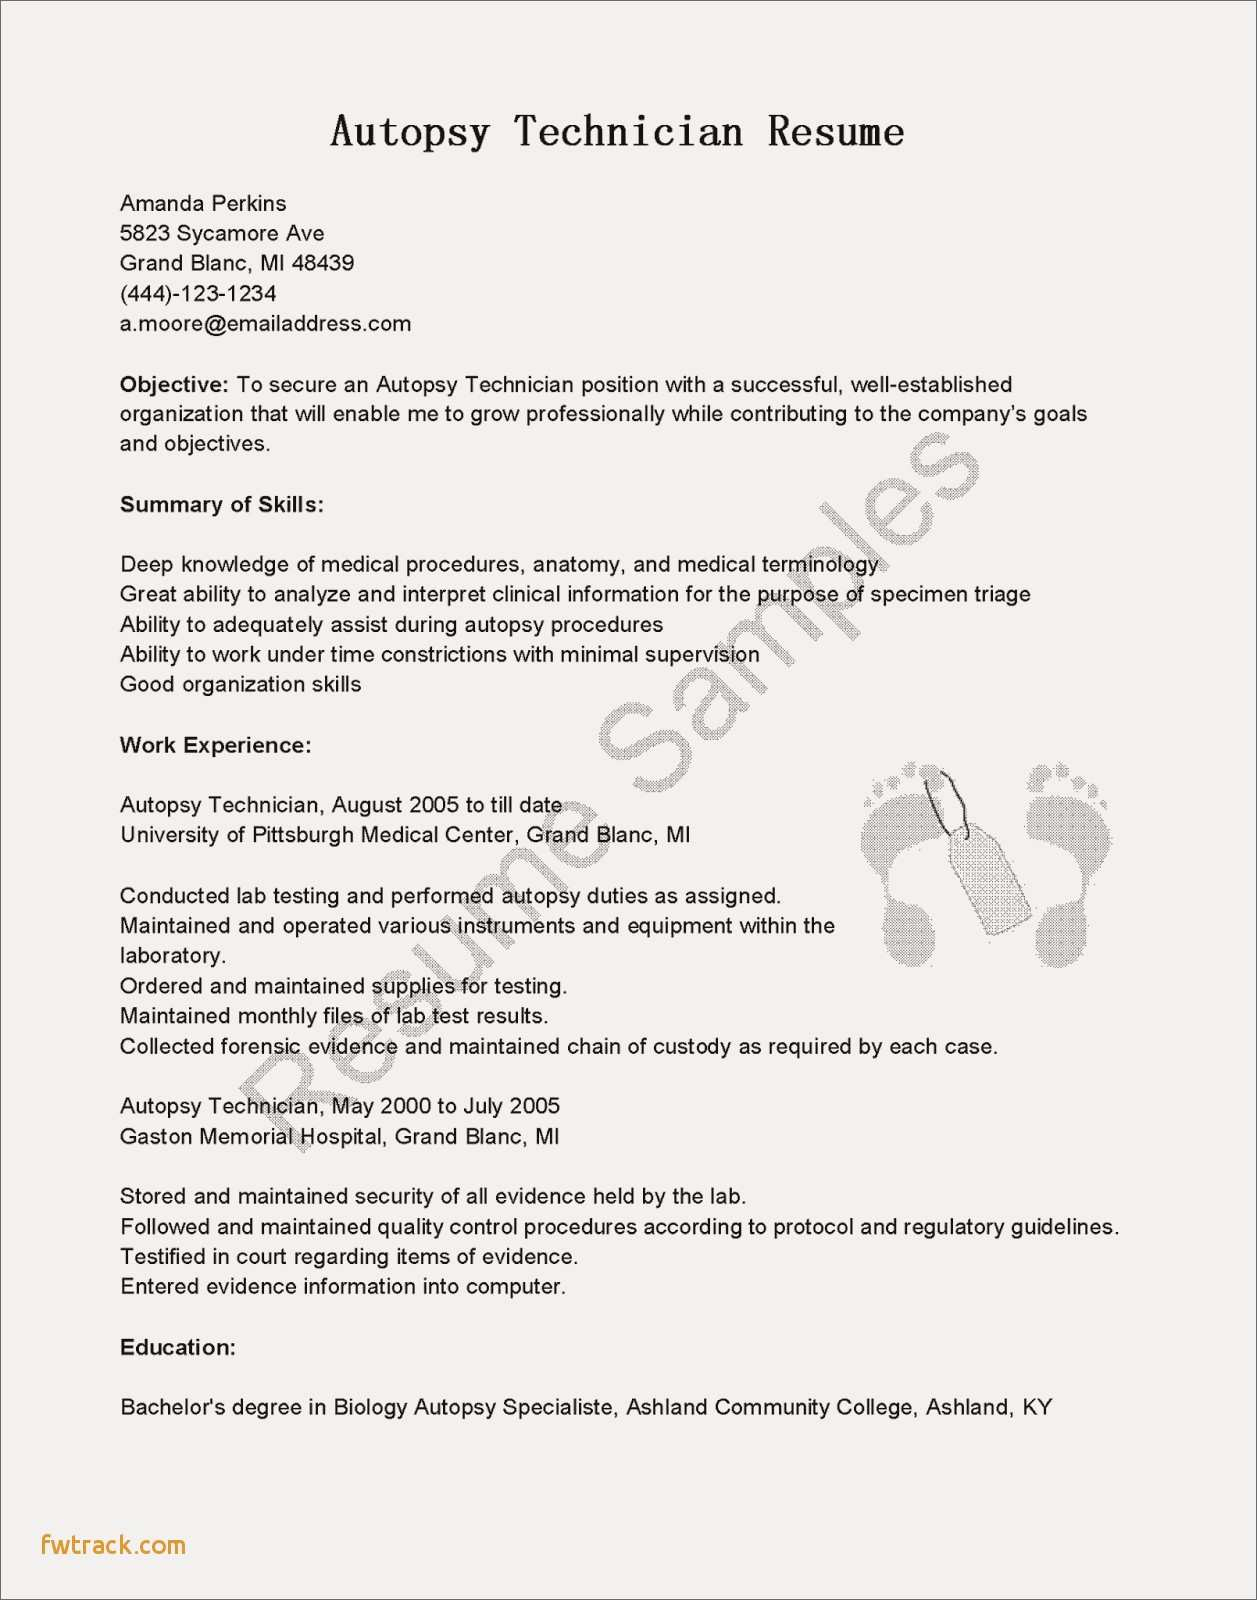 Medical Student Resume Template - Winning Resume Templates Fwtrack Fwtrack